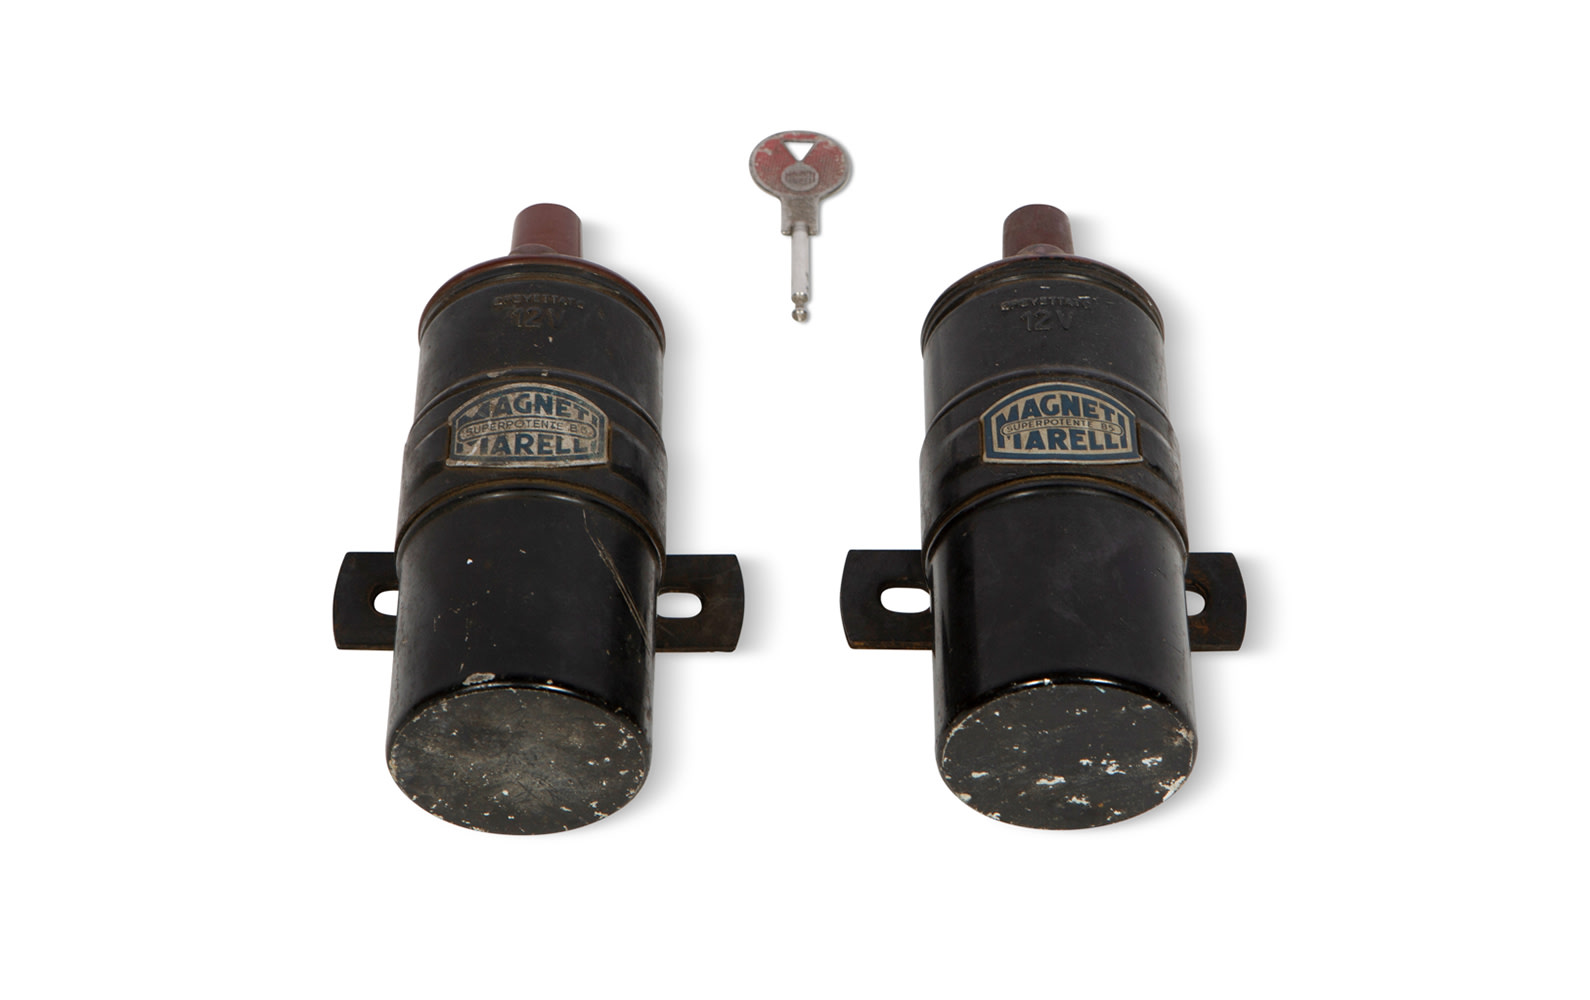 Magneti Marelli Ignition Key and Two Superpotente B5 Ignition Coils